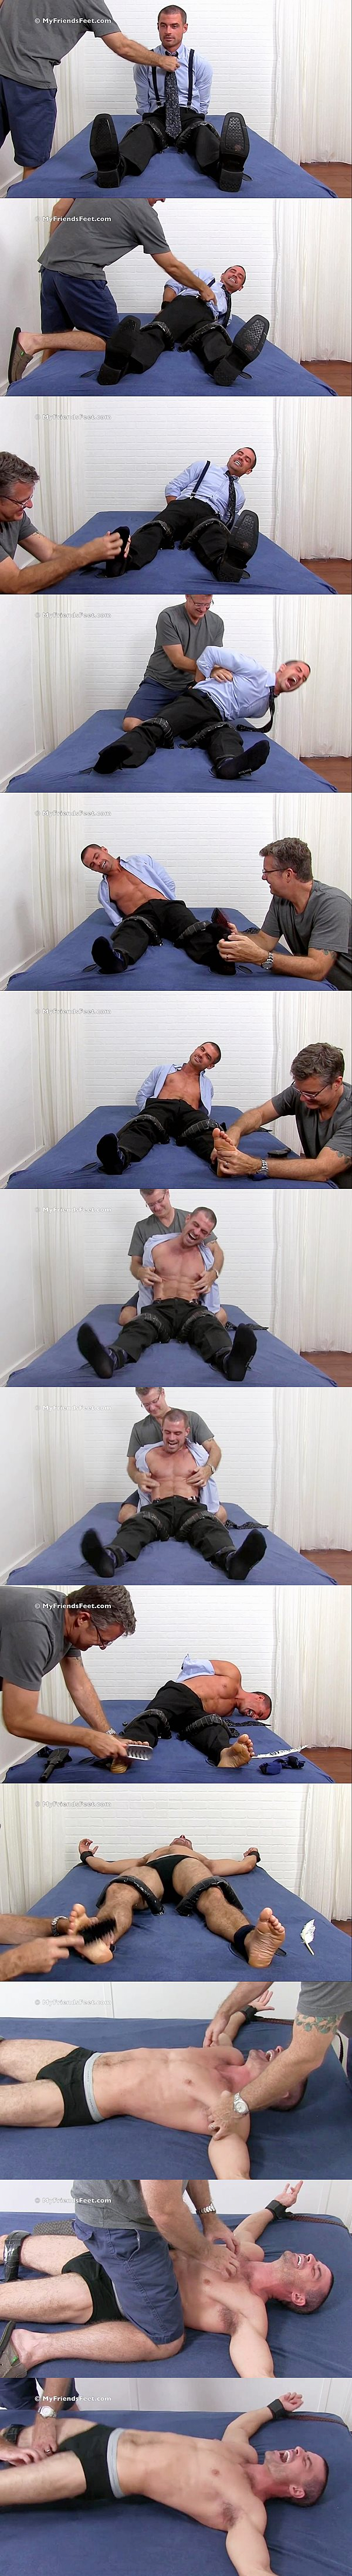 Hot muscle jock Sawyer (aka Daniel at Seancody) gets his sensitive feet and body tickled and tortured at Myfriendsfeet 02